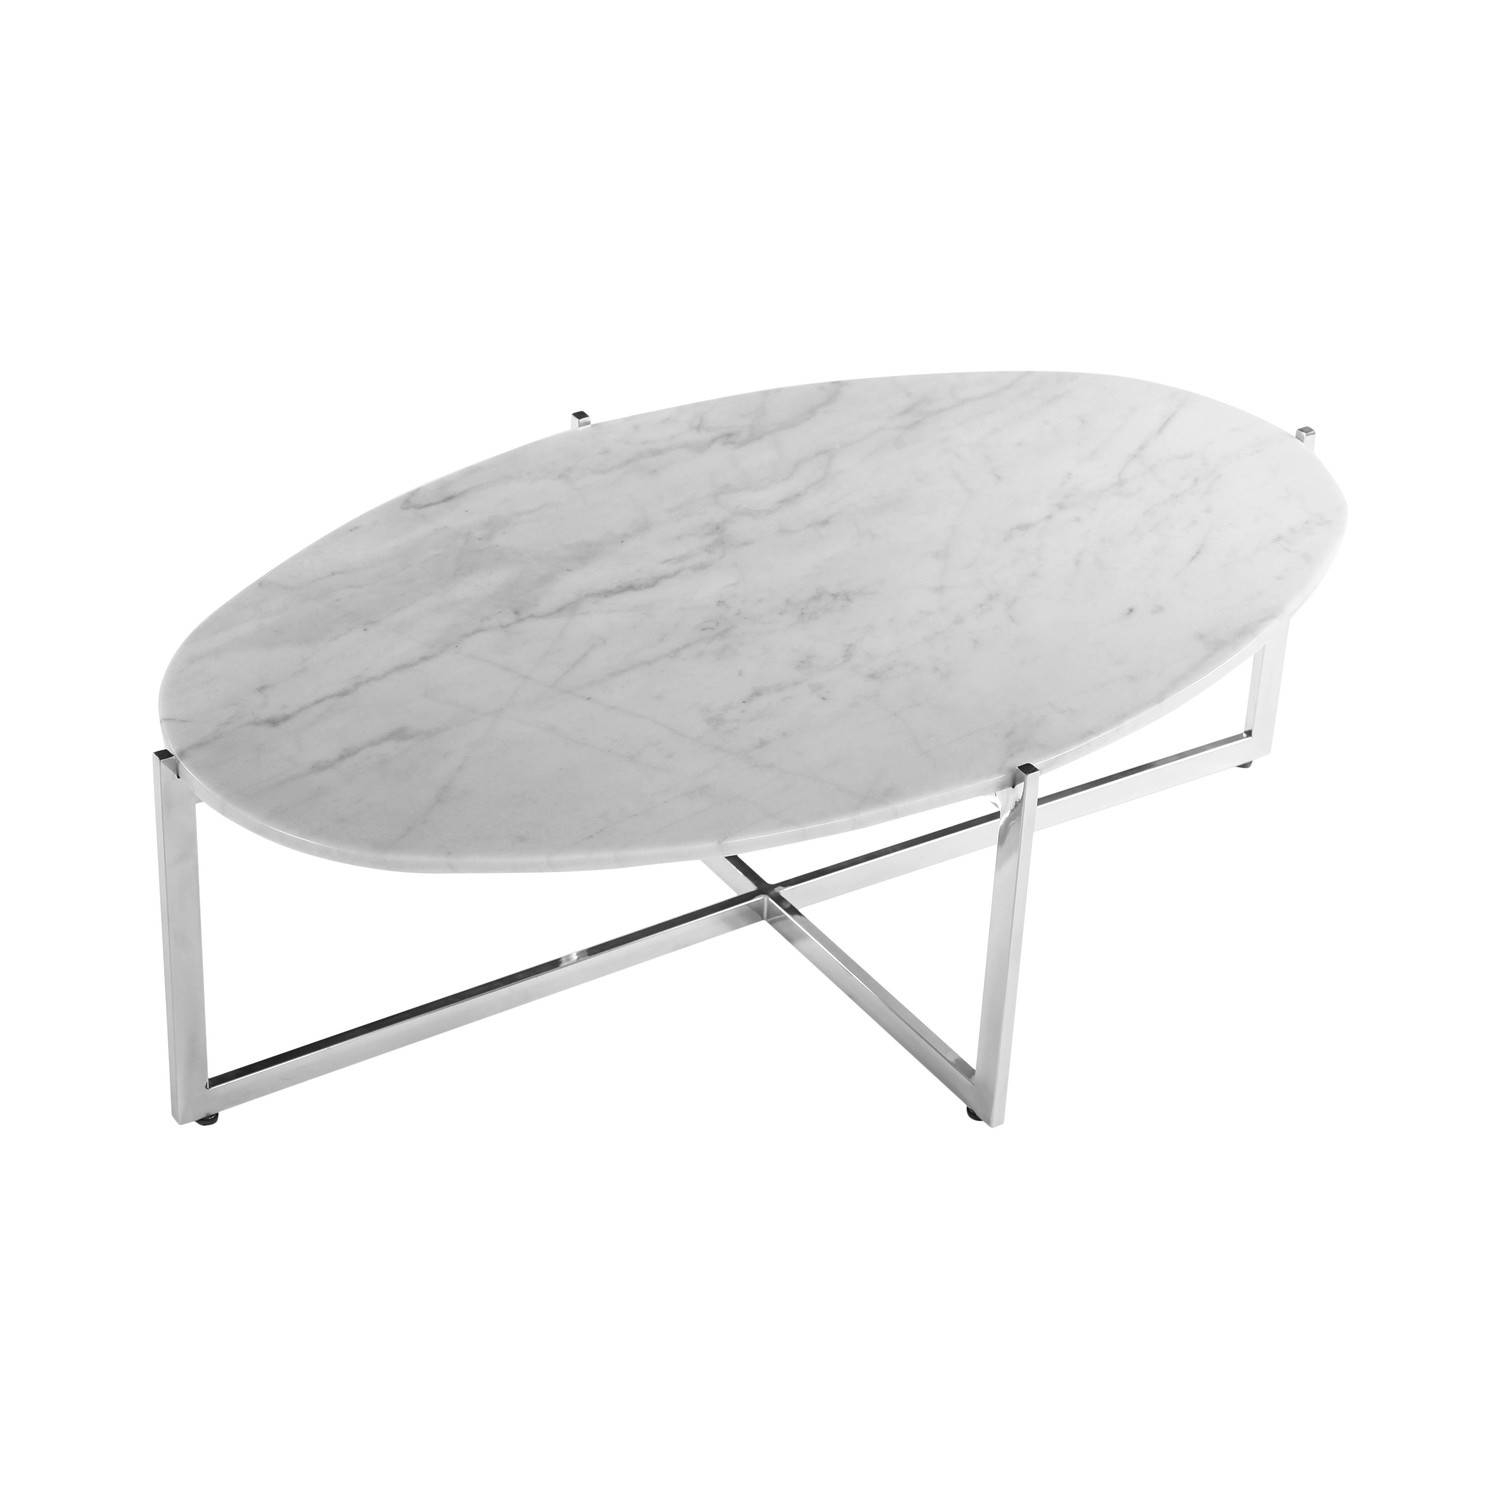 Interesting Oval Marble Coffee Table – Modern Oval Marble Coffee with regard to Oblong Coffee Tables (Image 22 of 30)